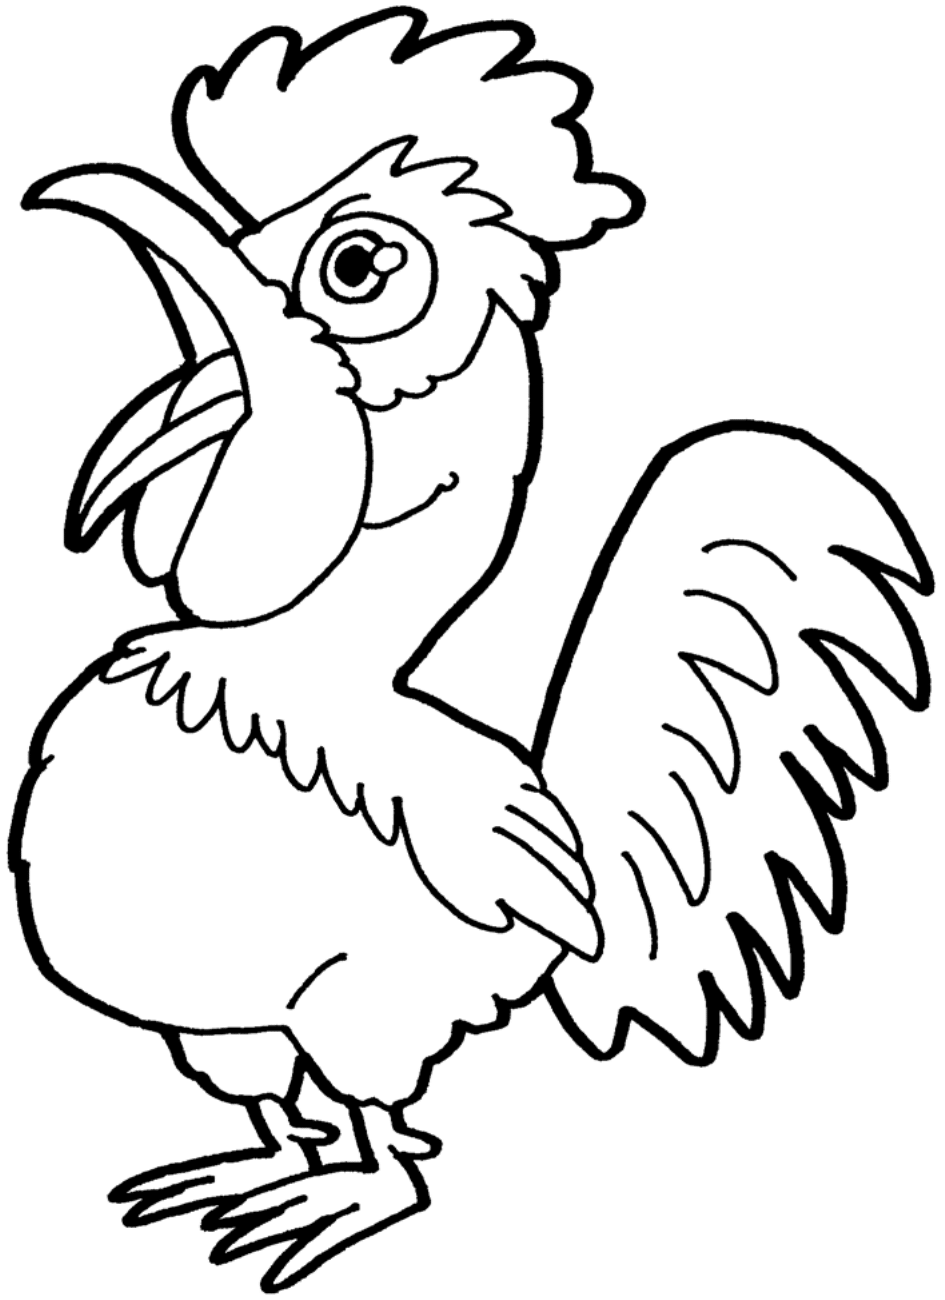 Clipart Rooster BW-1